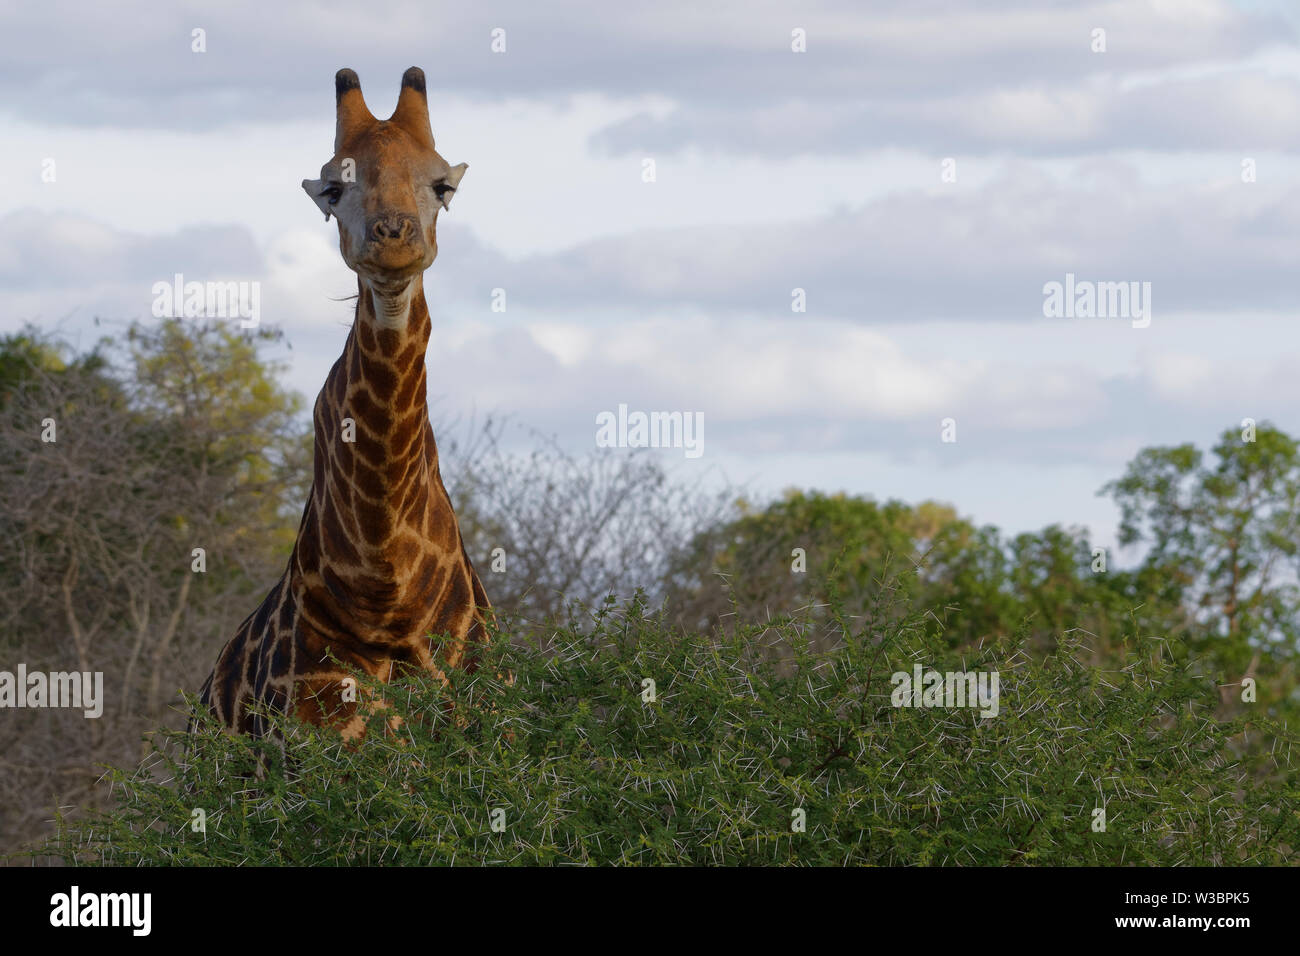 South African giraffe (Giraffa camelopardalis giraffa), adult, standing at the foot of a spiny shrub, curious, Kruger National Park, South Africa, Afr - Stock Image